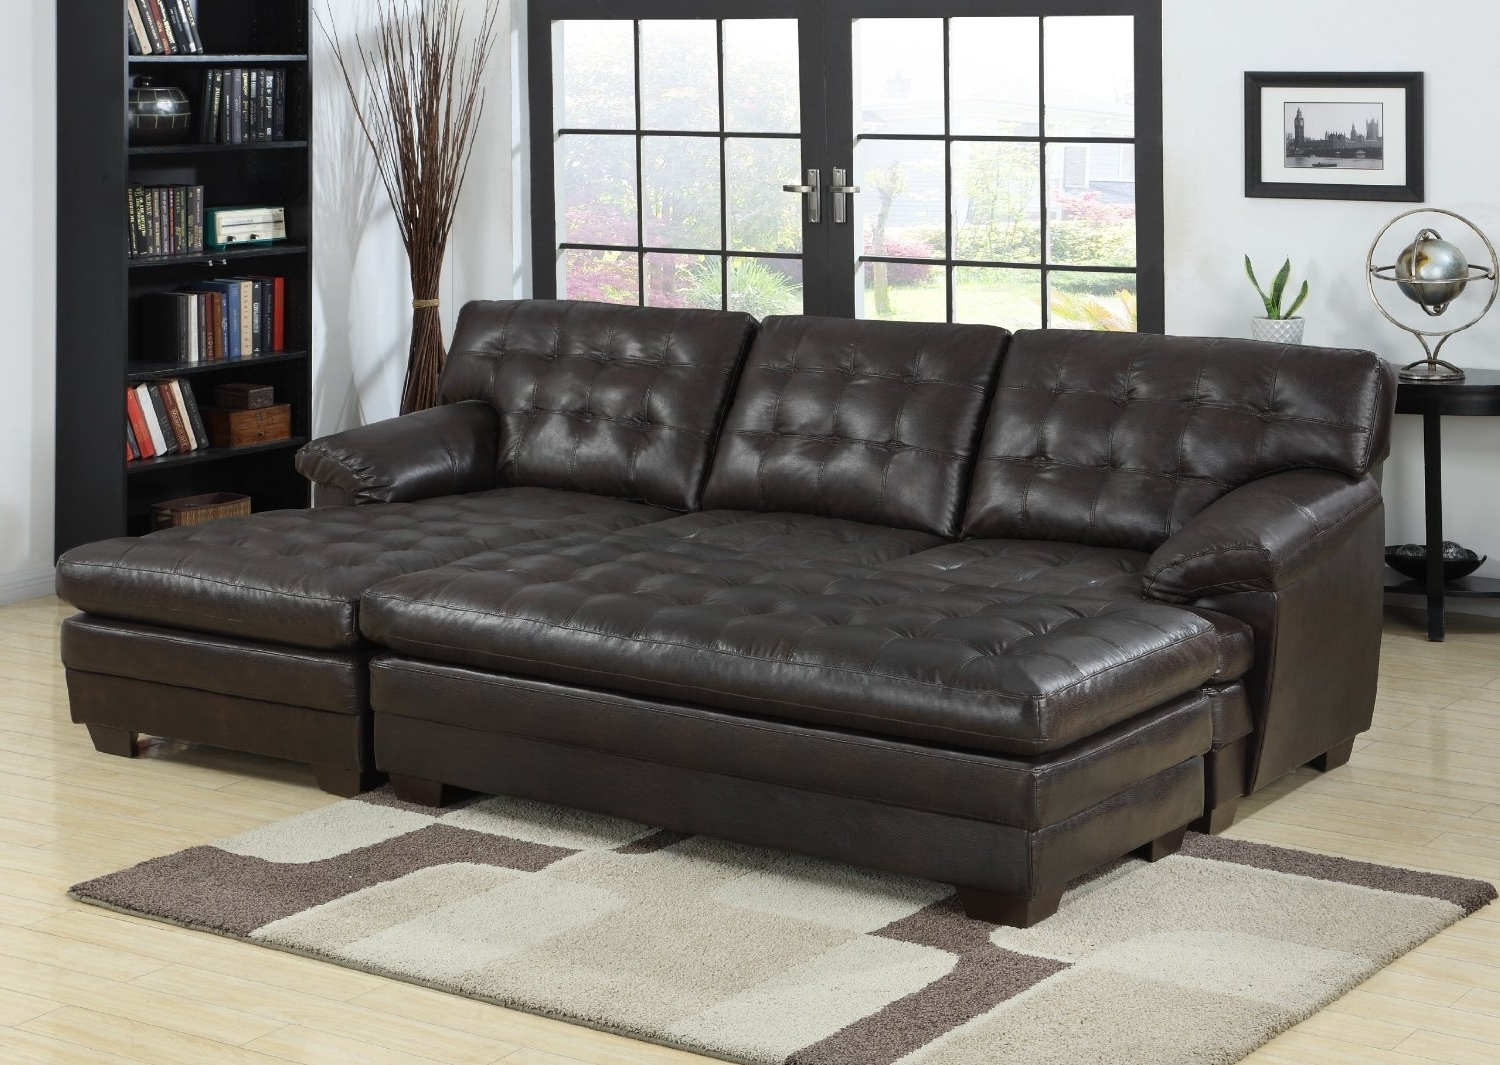 The Comfortable Chaise Lounge Sofa — The Home Redesign Intended For Recent Chaise Lounge Couches (View 12 of 15)